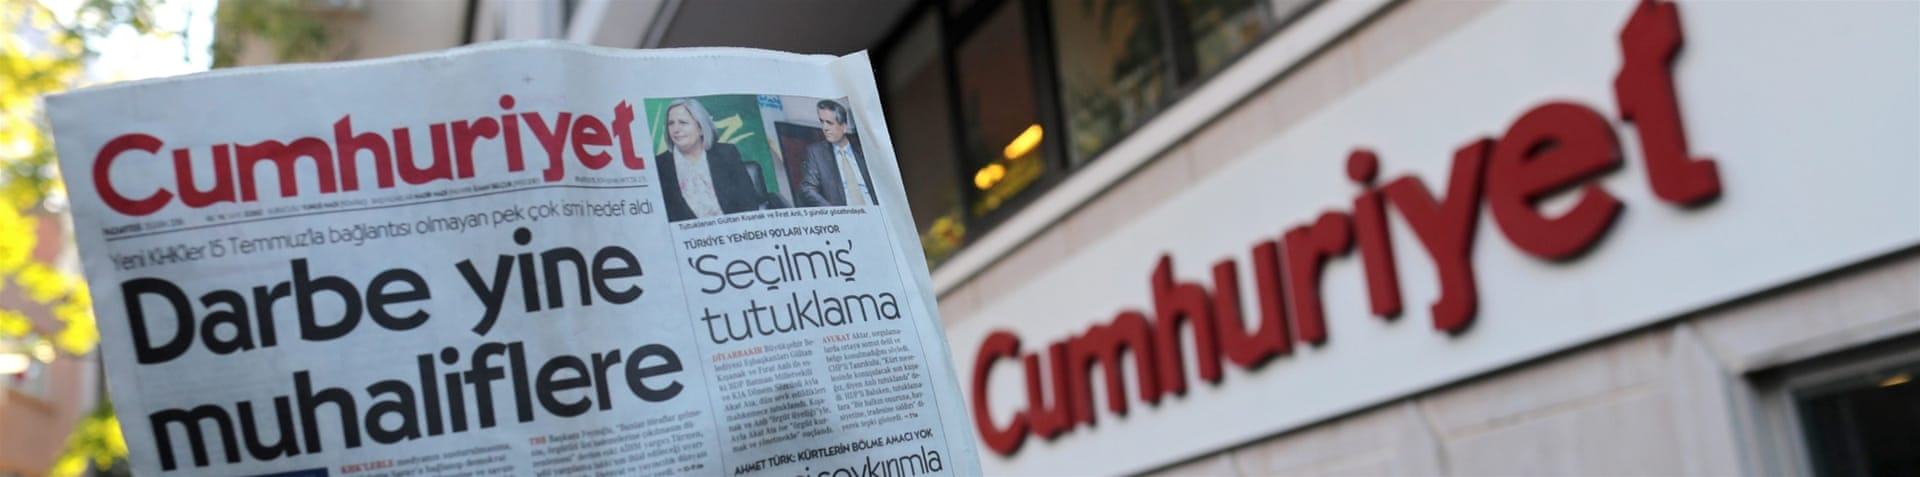 Cumhuriyet is known for its vigorously independent reporting [EPA]